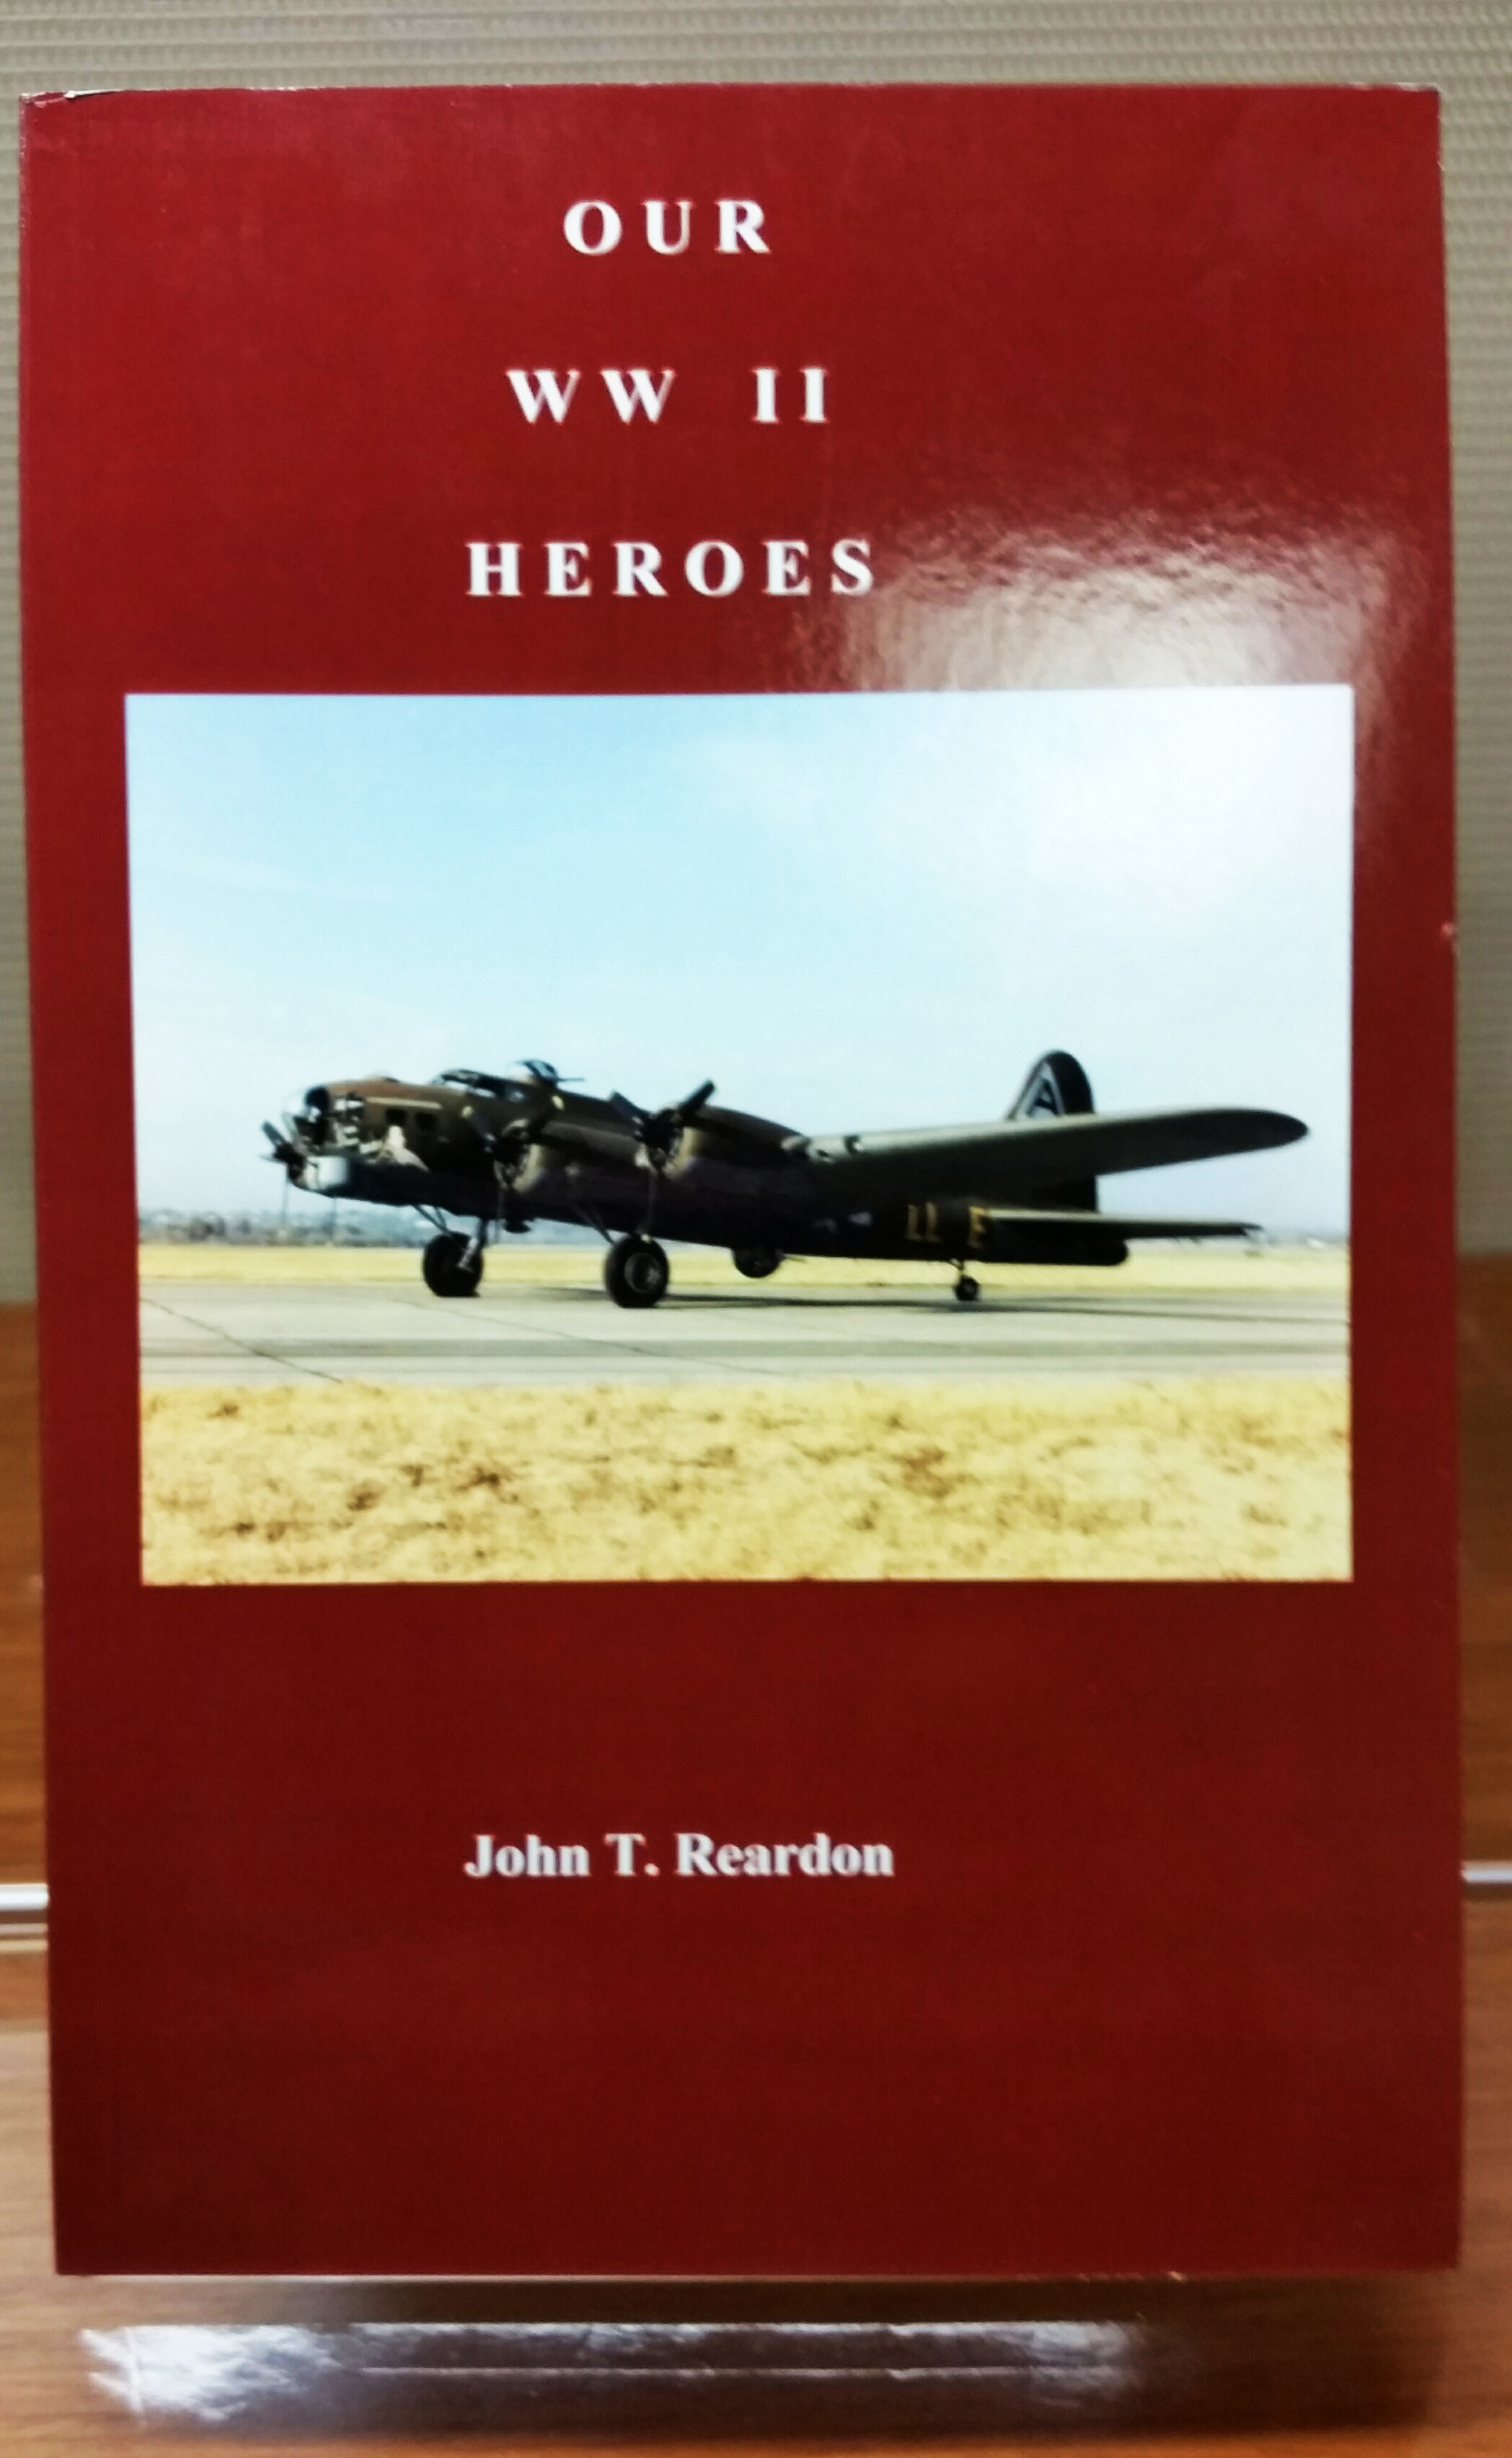 Our WW II Heroes, by John T. Reardon, 2010, 150 pp. Prices reflect the cost of the book PLUS S&H fee of $3.00.